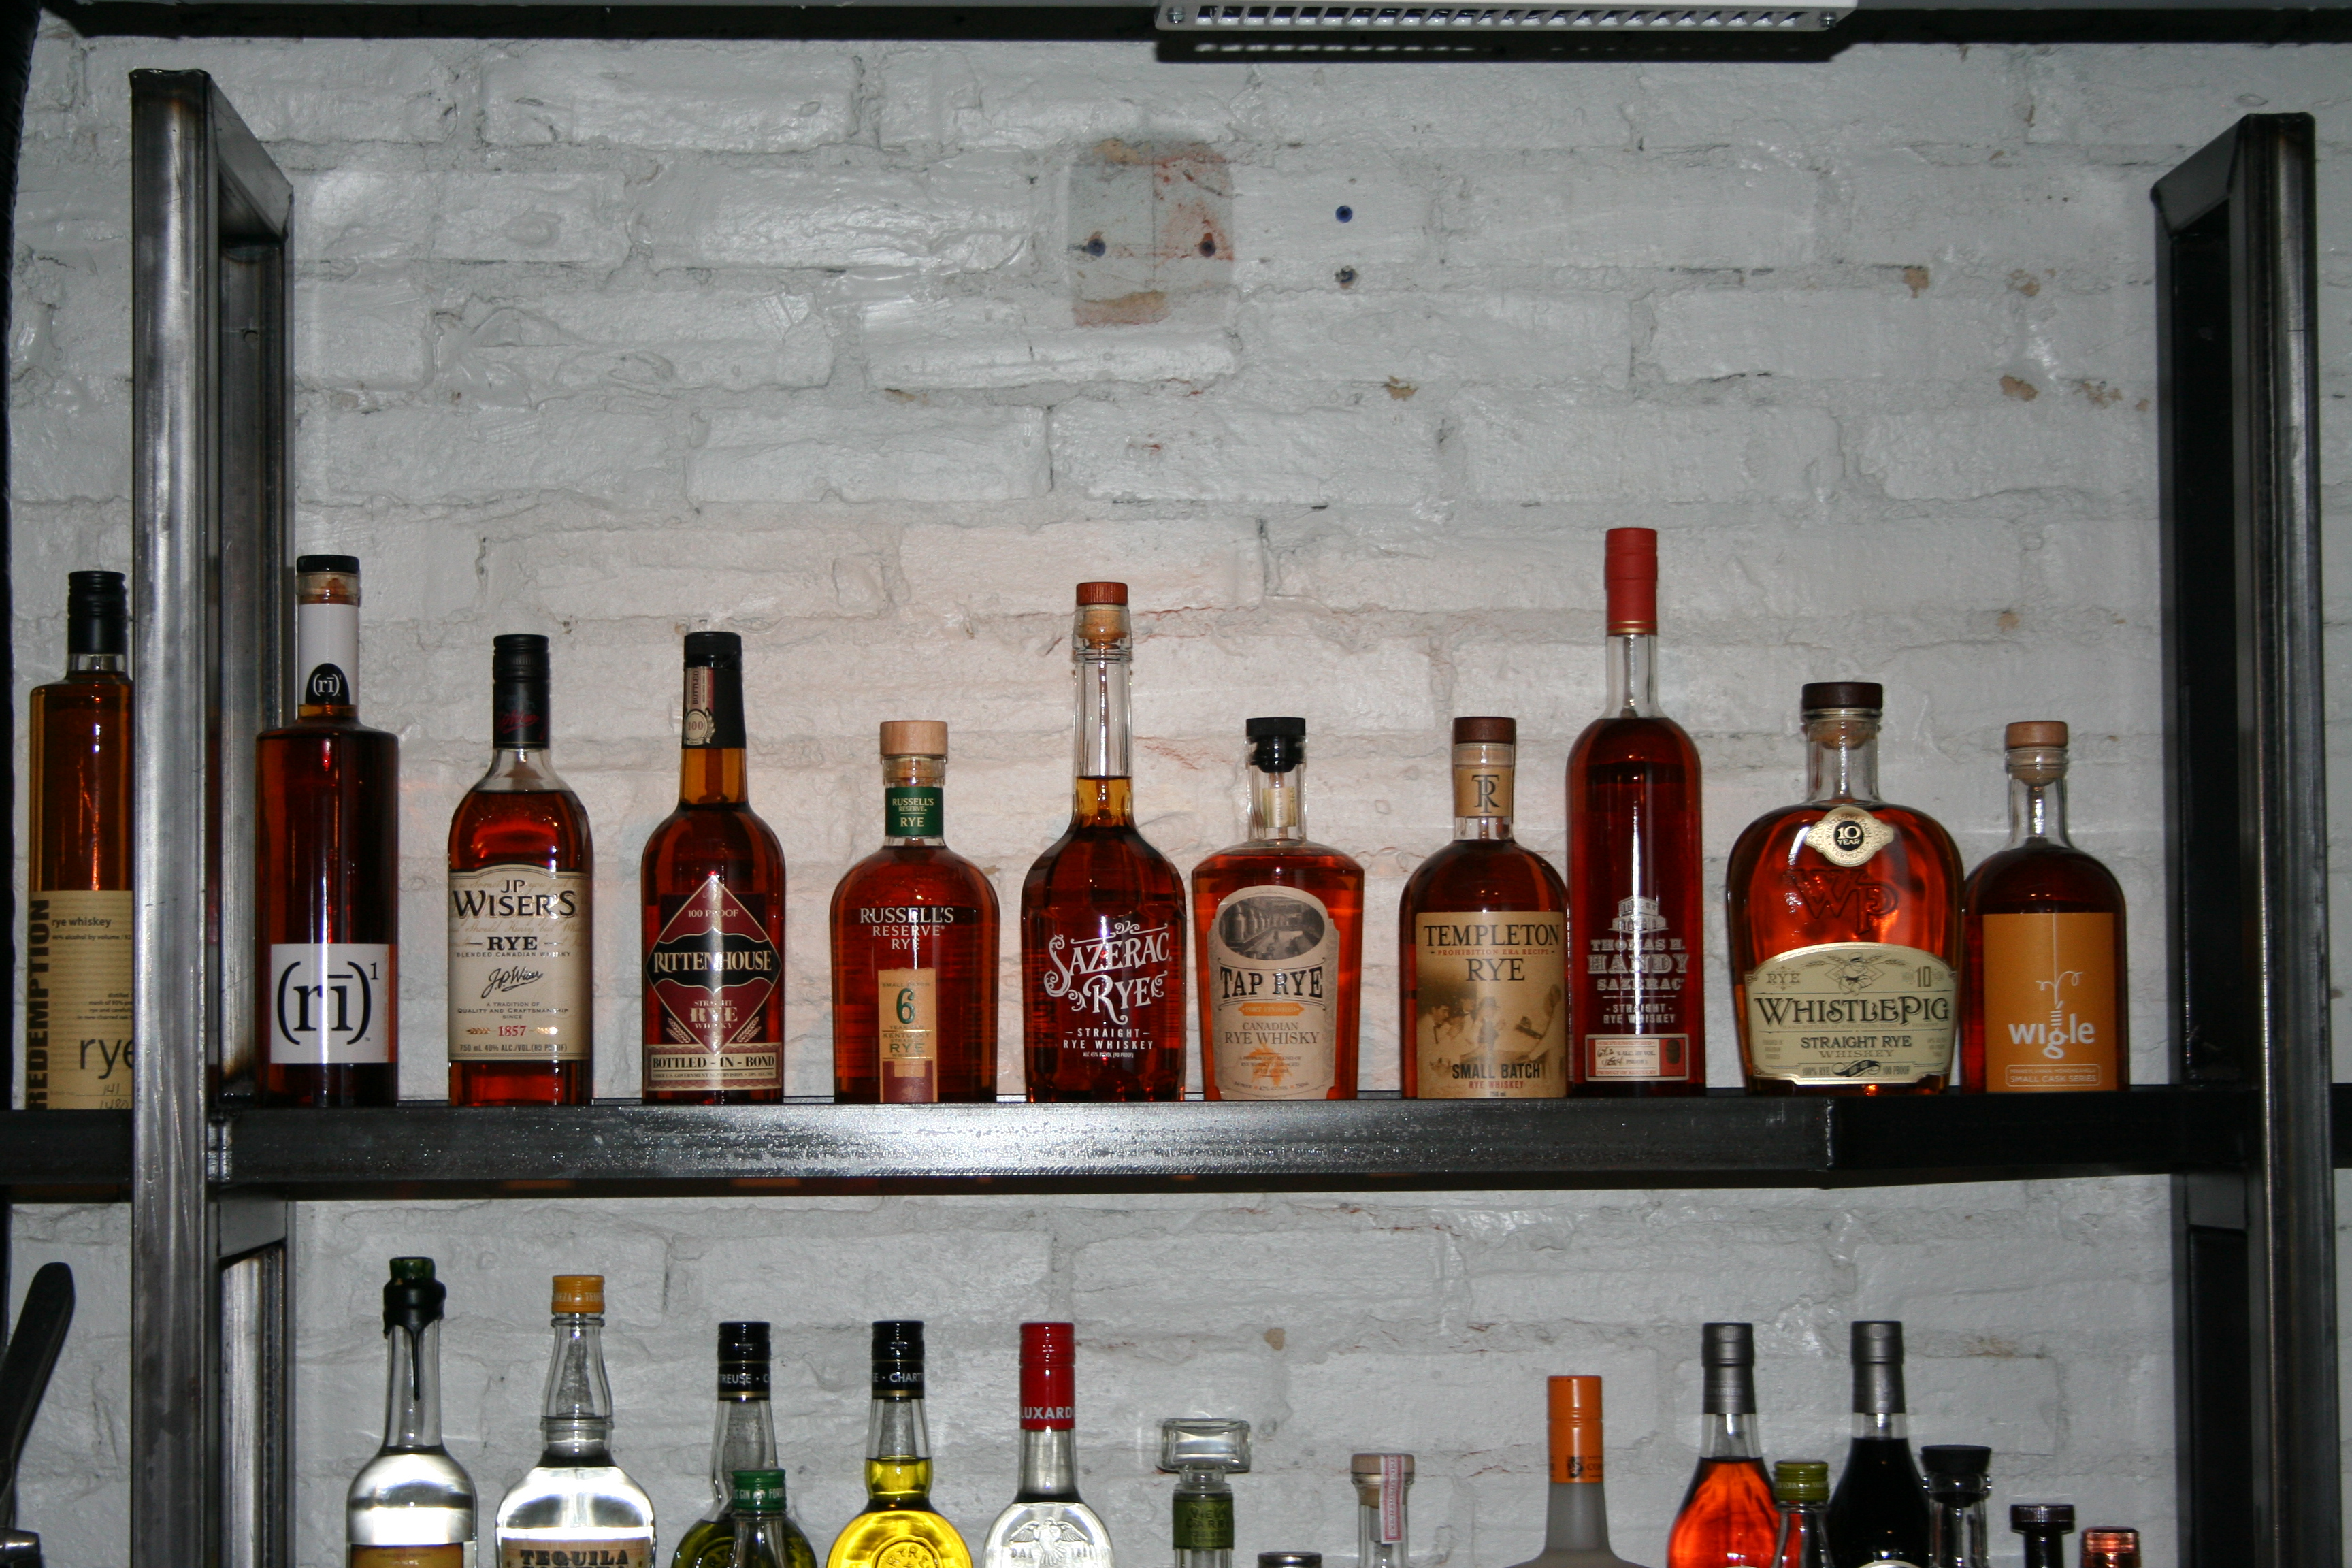 The bar features 29 kinds of rye whiskey. (Photo: Mark Heckathorn/DC on Heels)